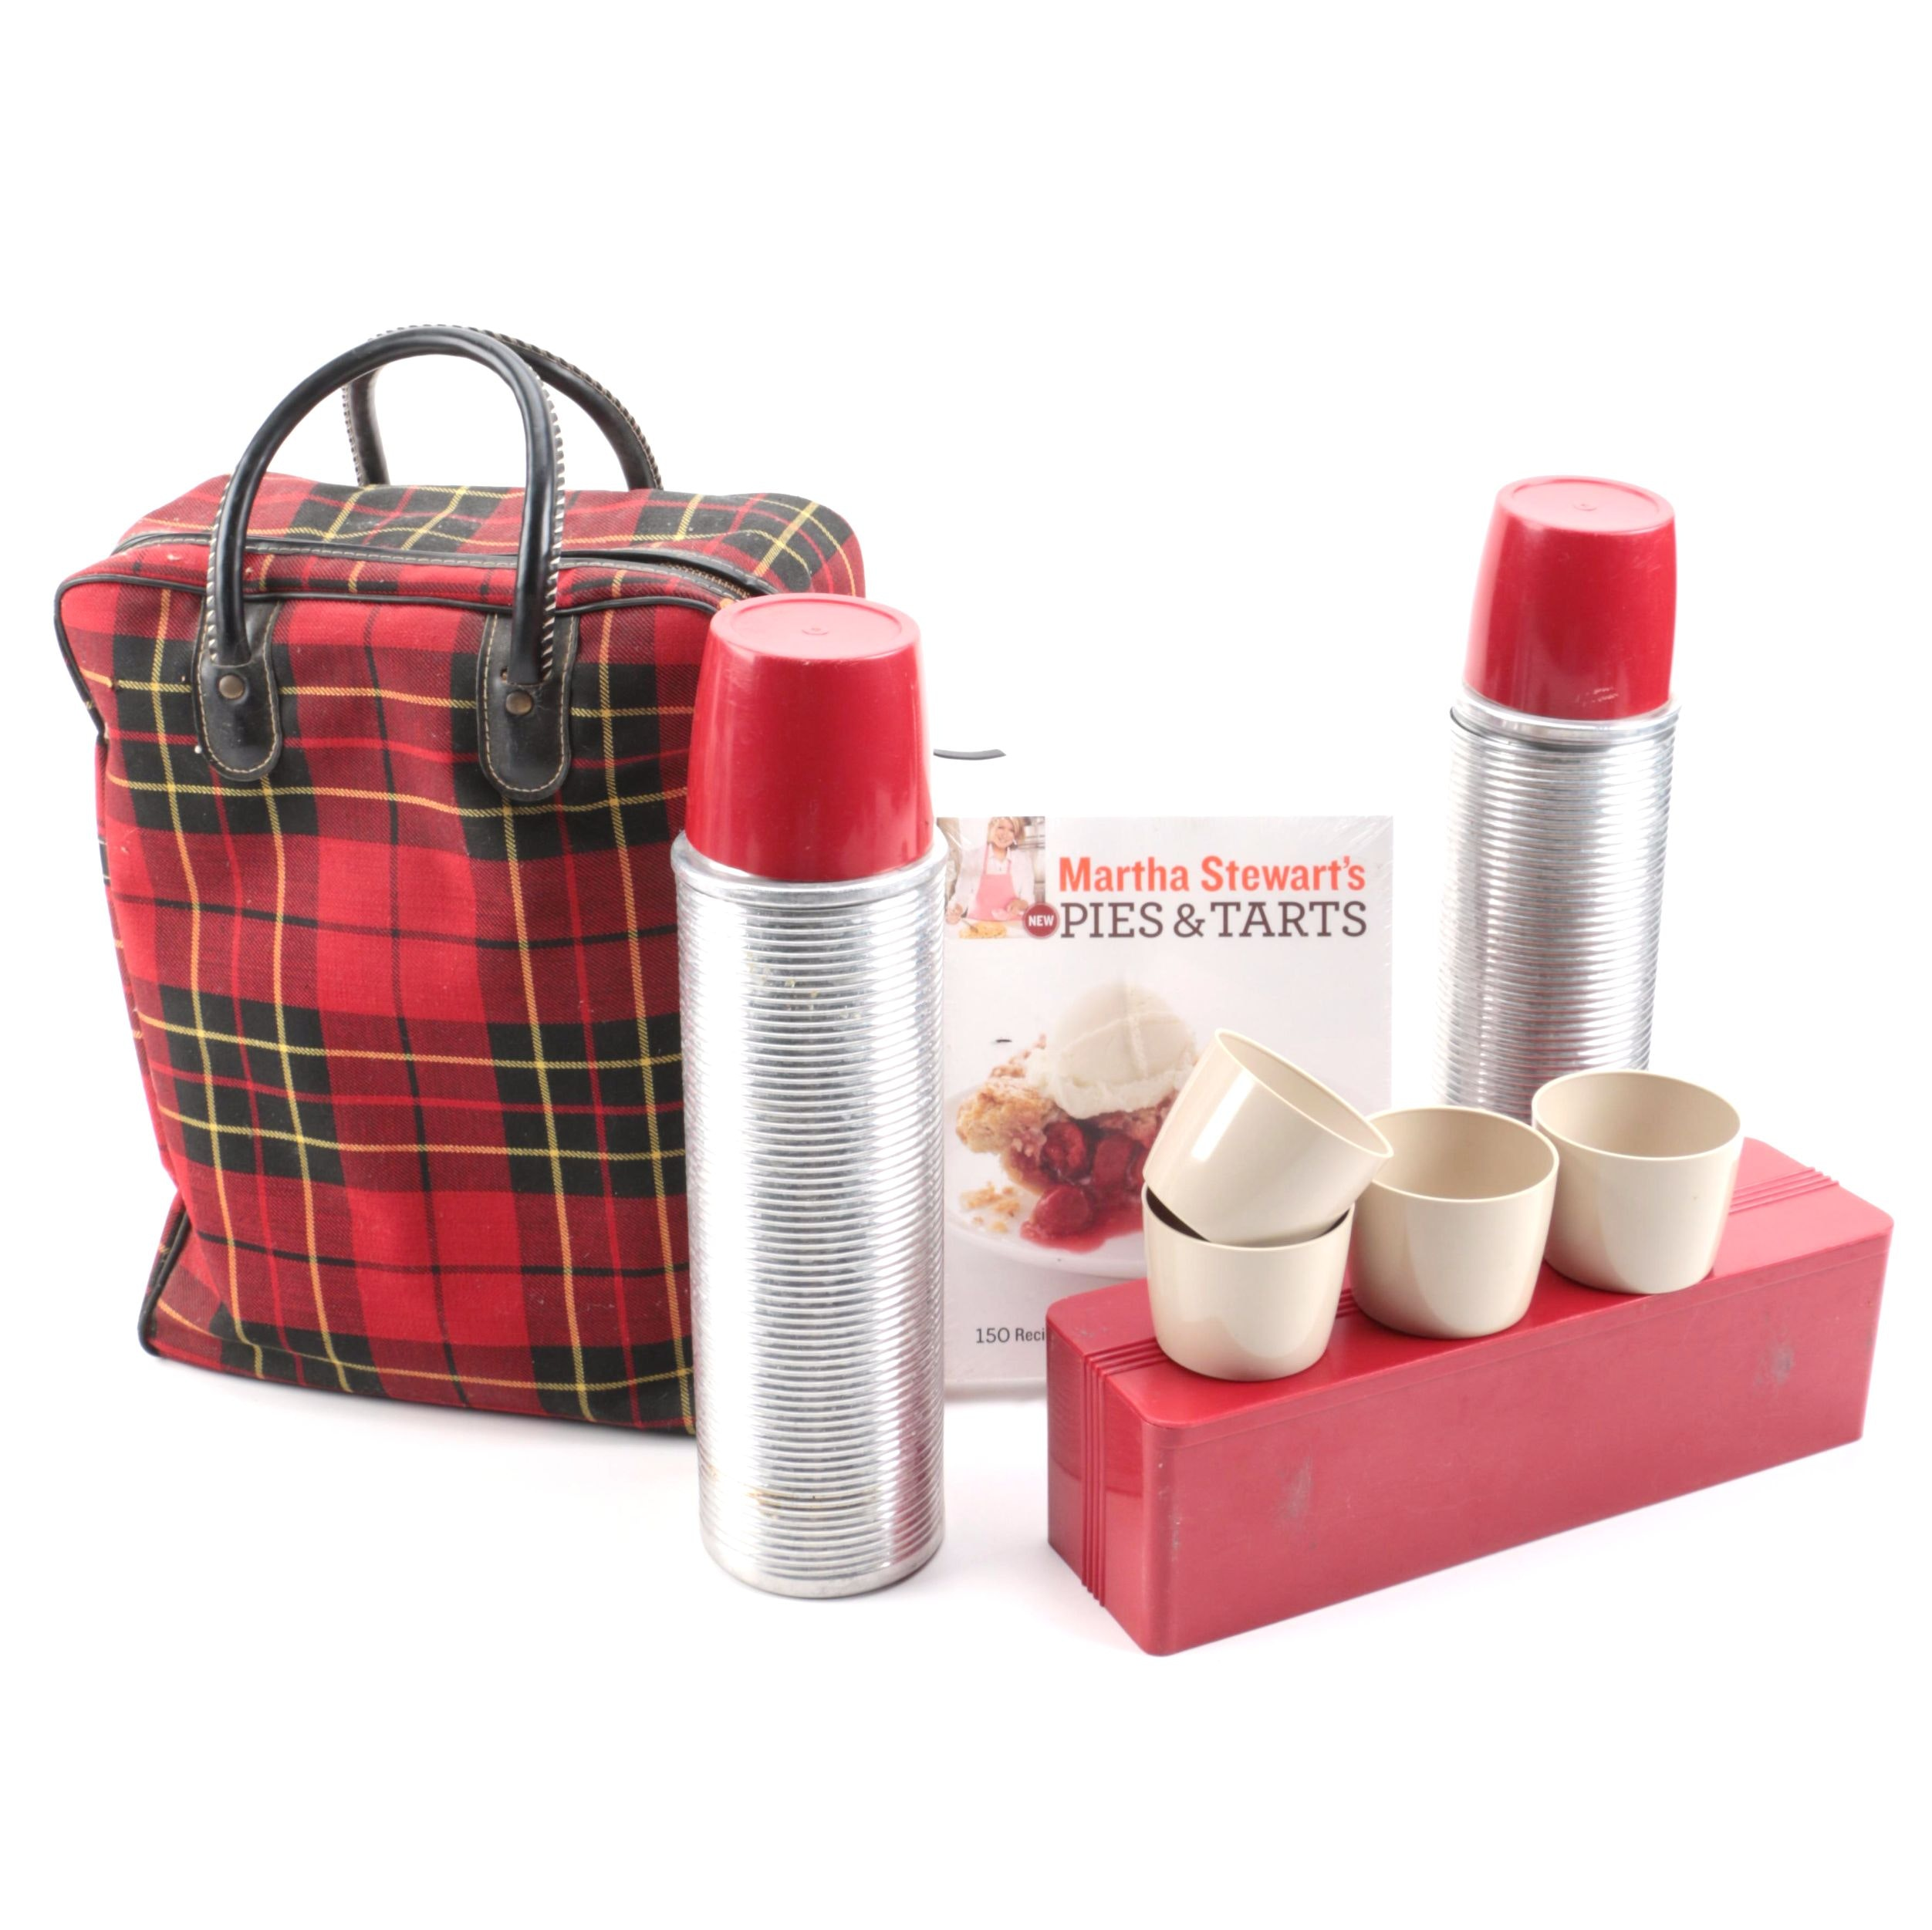 Lunch Tote and Picnic Accessories